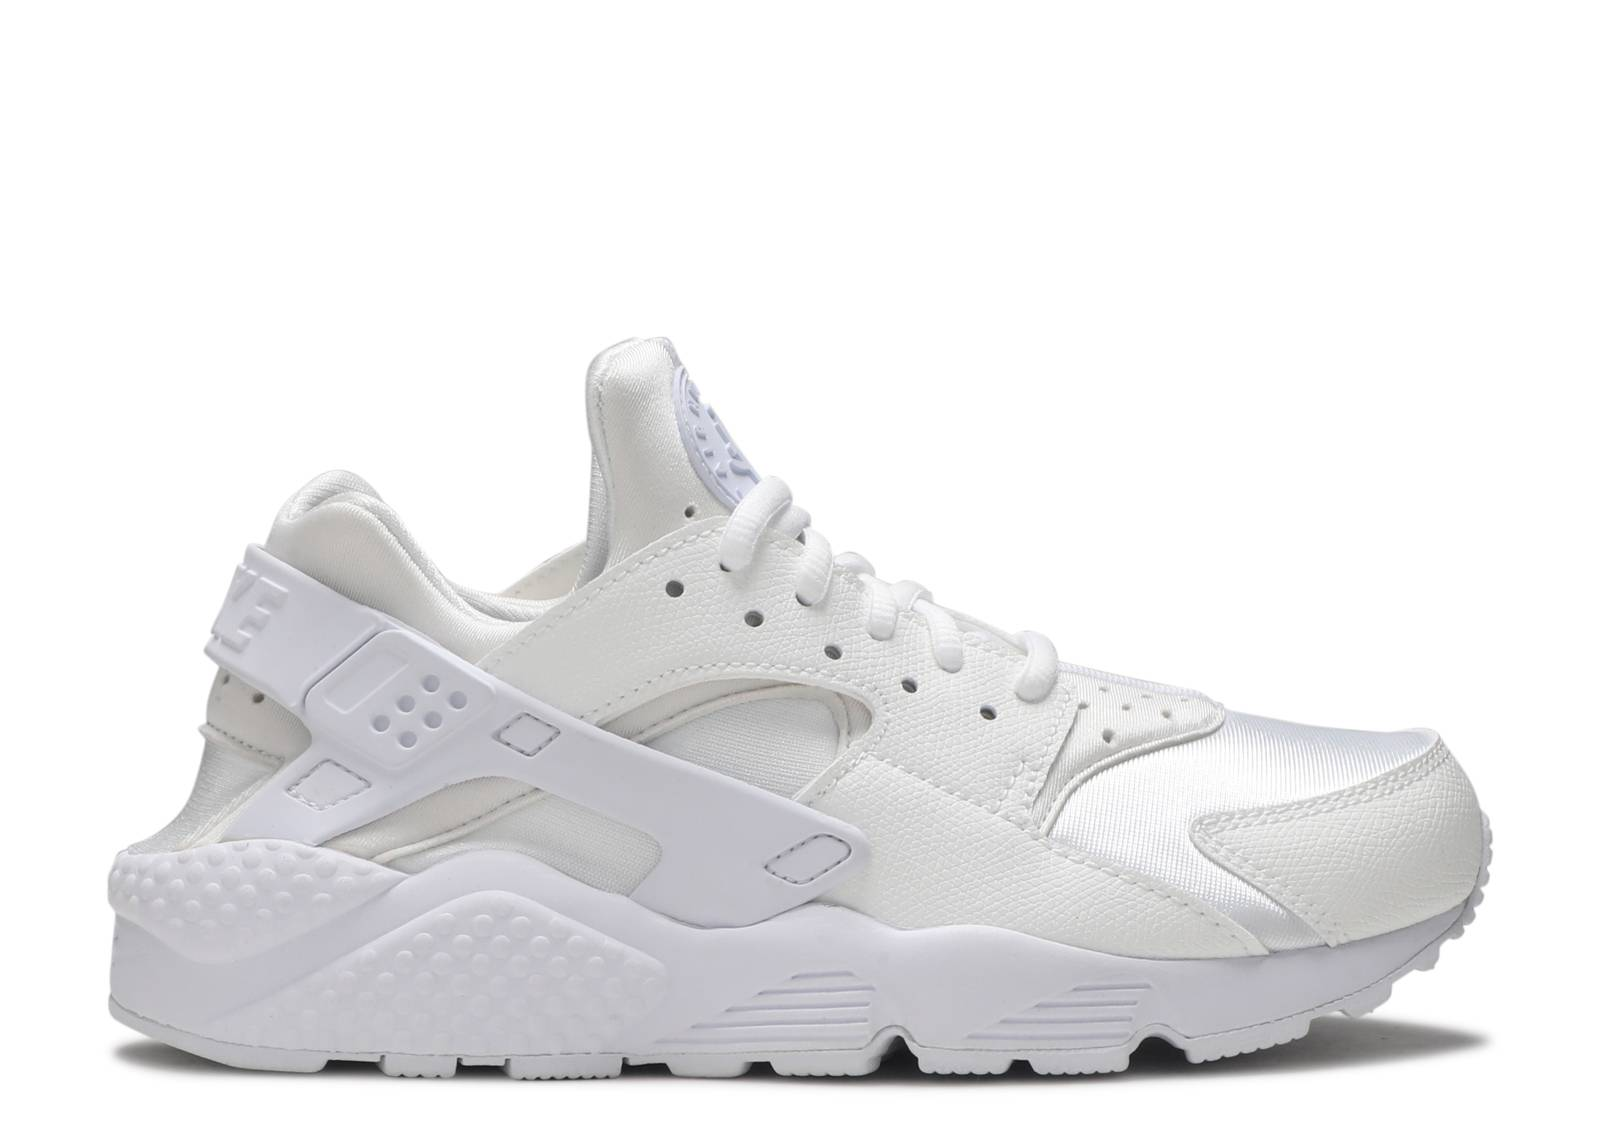 Nike Huaraches Shoes for Women   Men  7def8fa2d58f